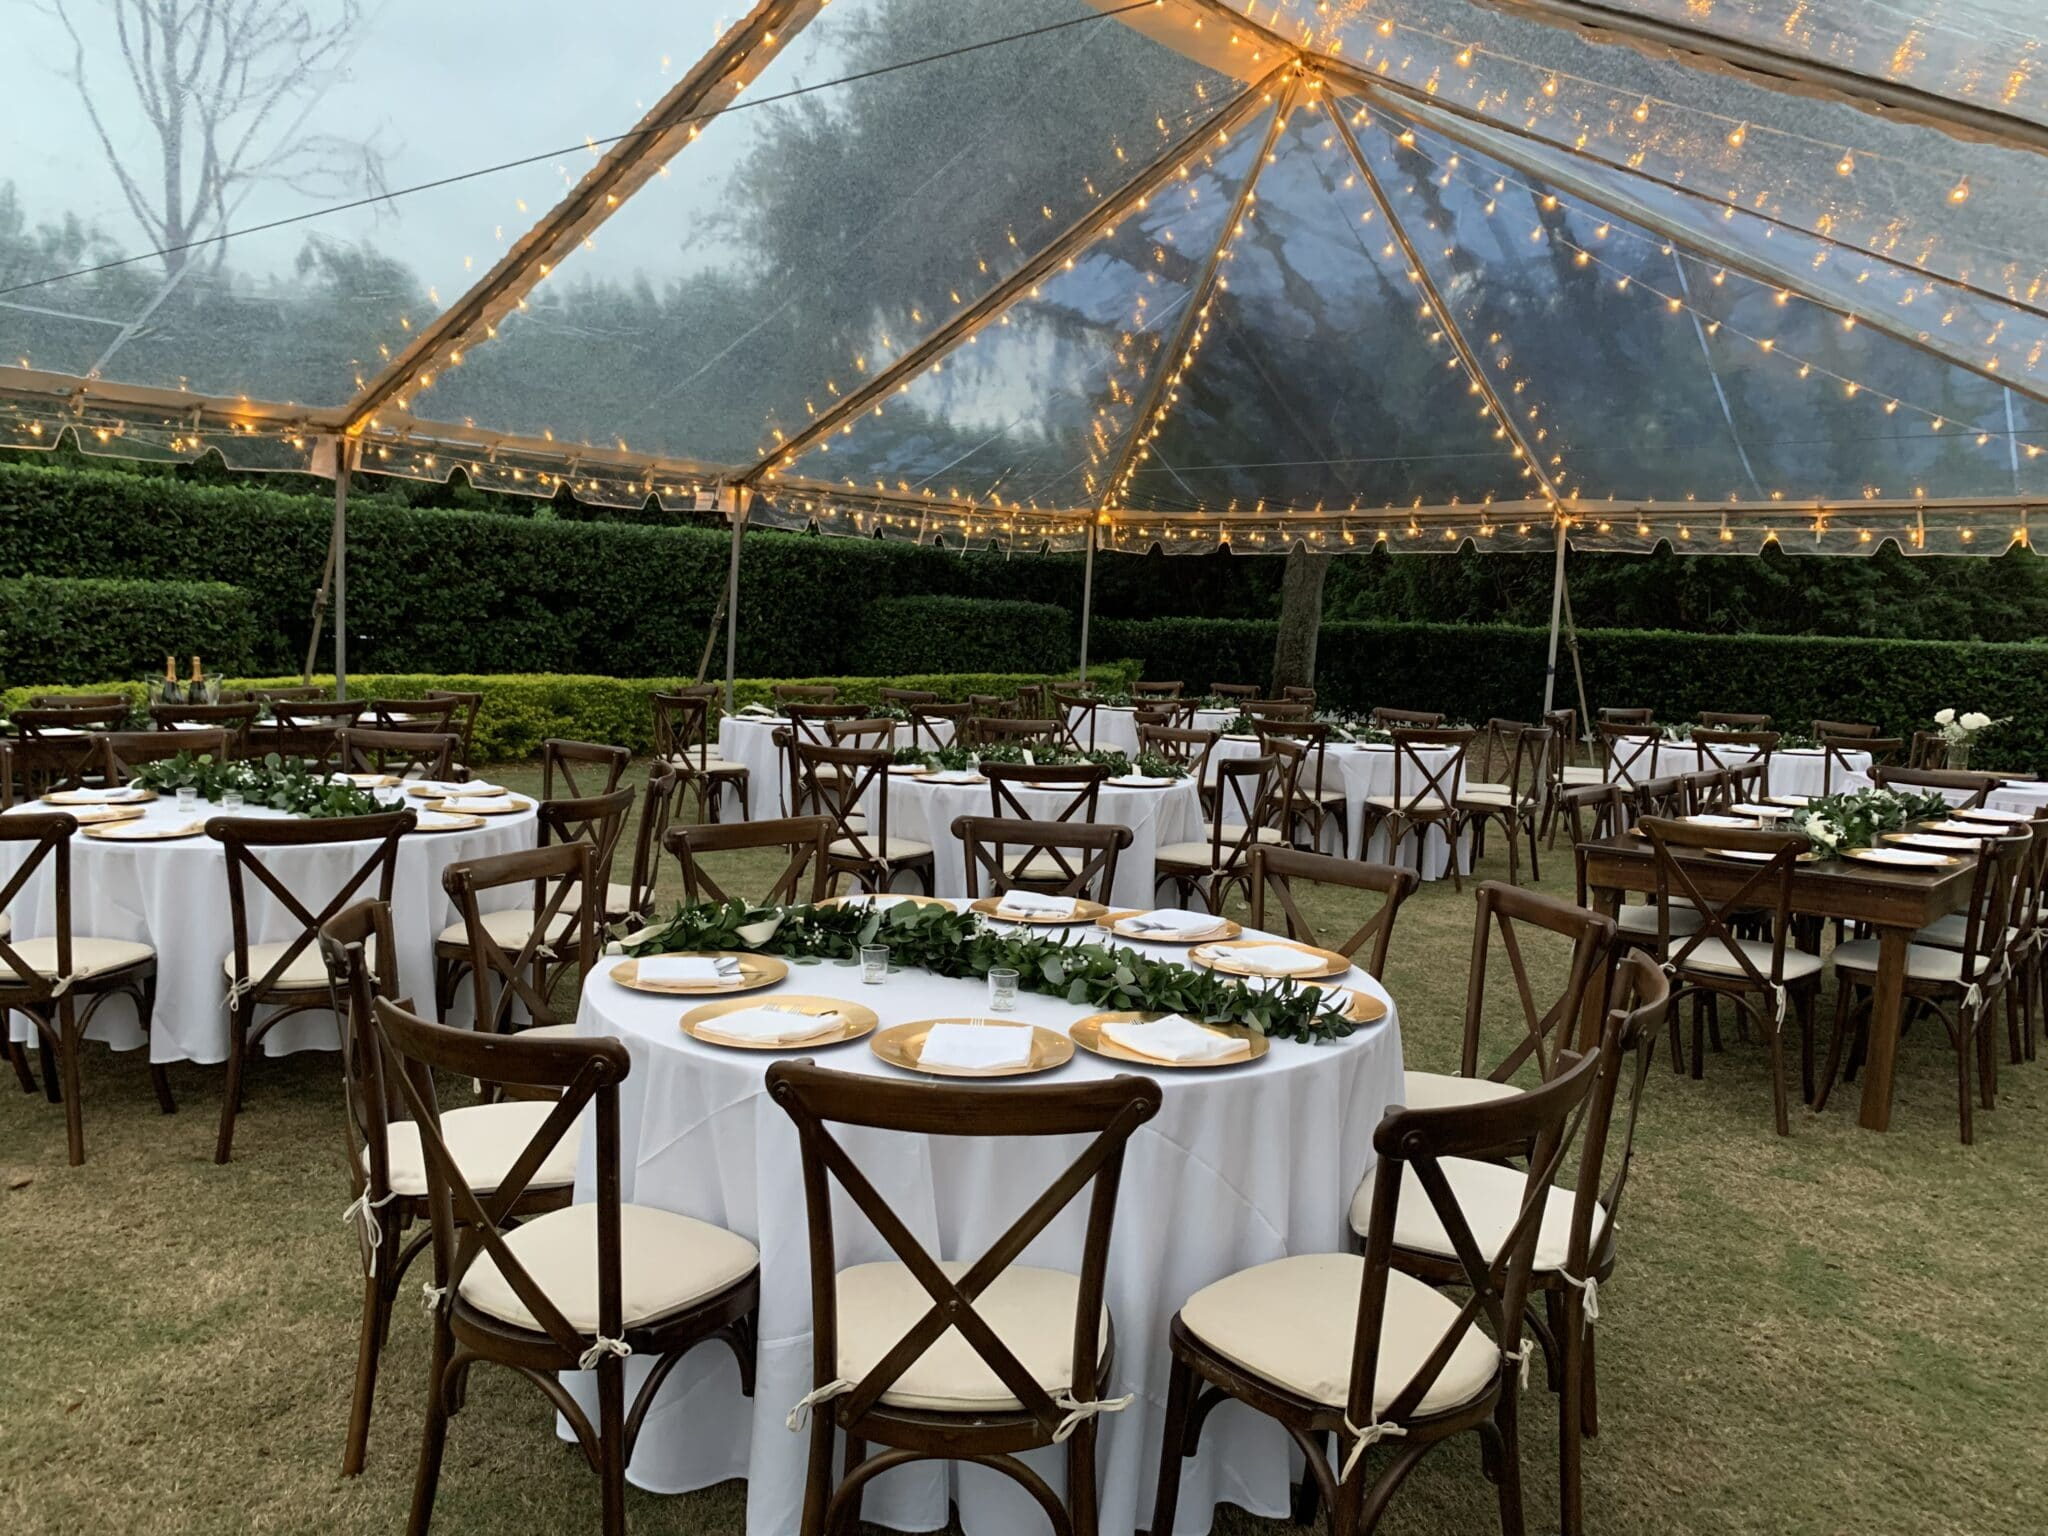 table set under a clear tent with lights